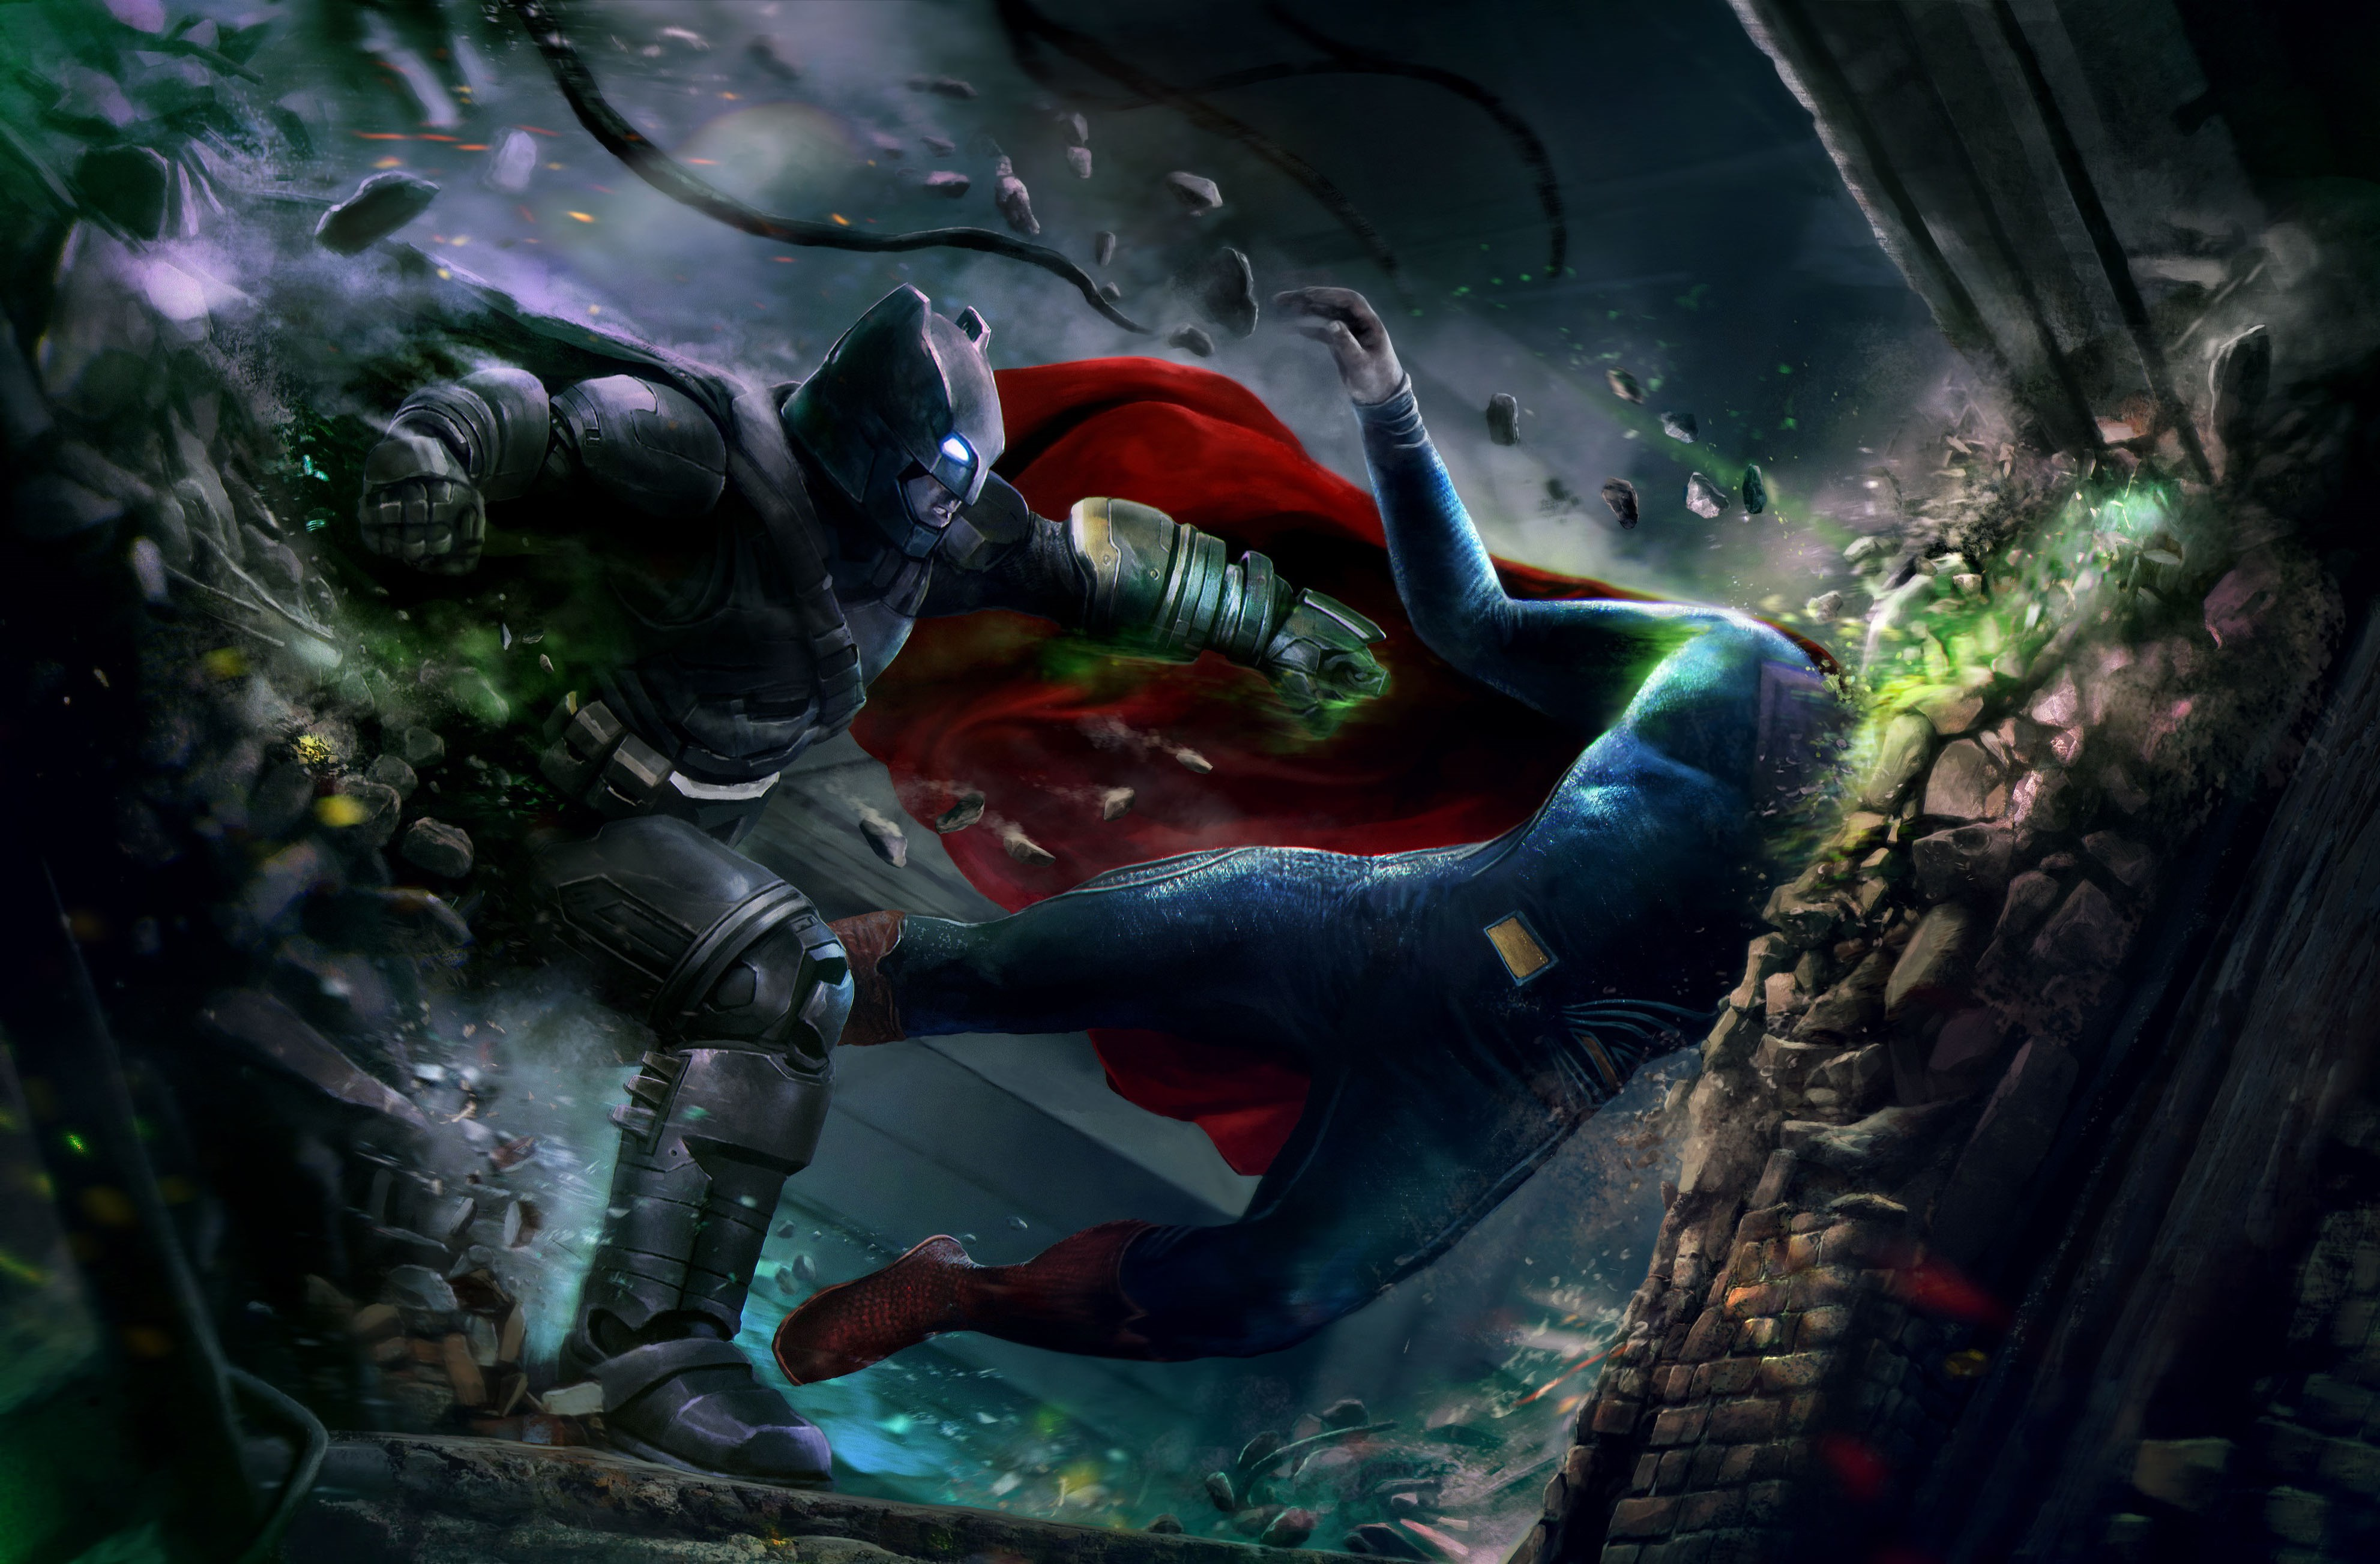 Batman V Superman Best Art Hd Superheroes 4k Wallpapers Images Backgrounds Photos And Pictures